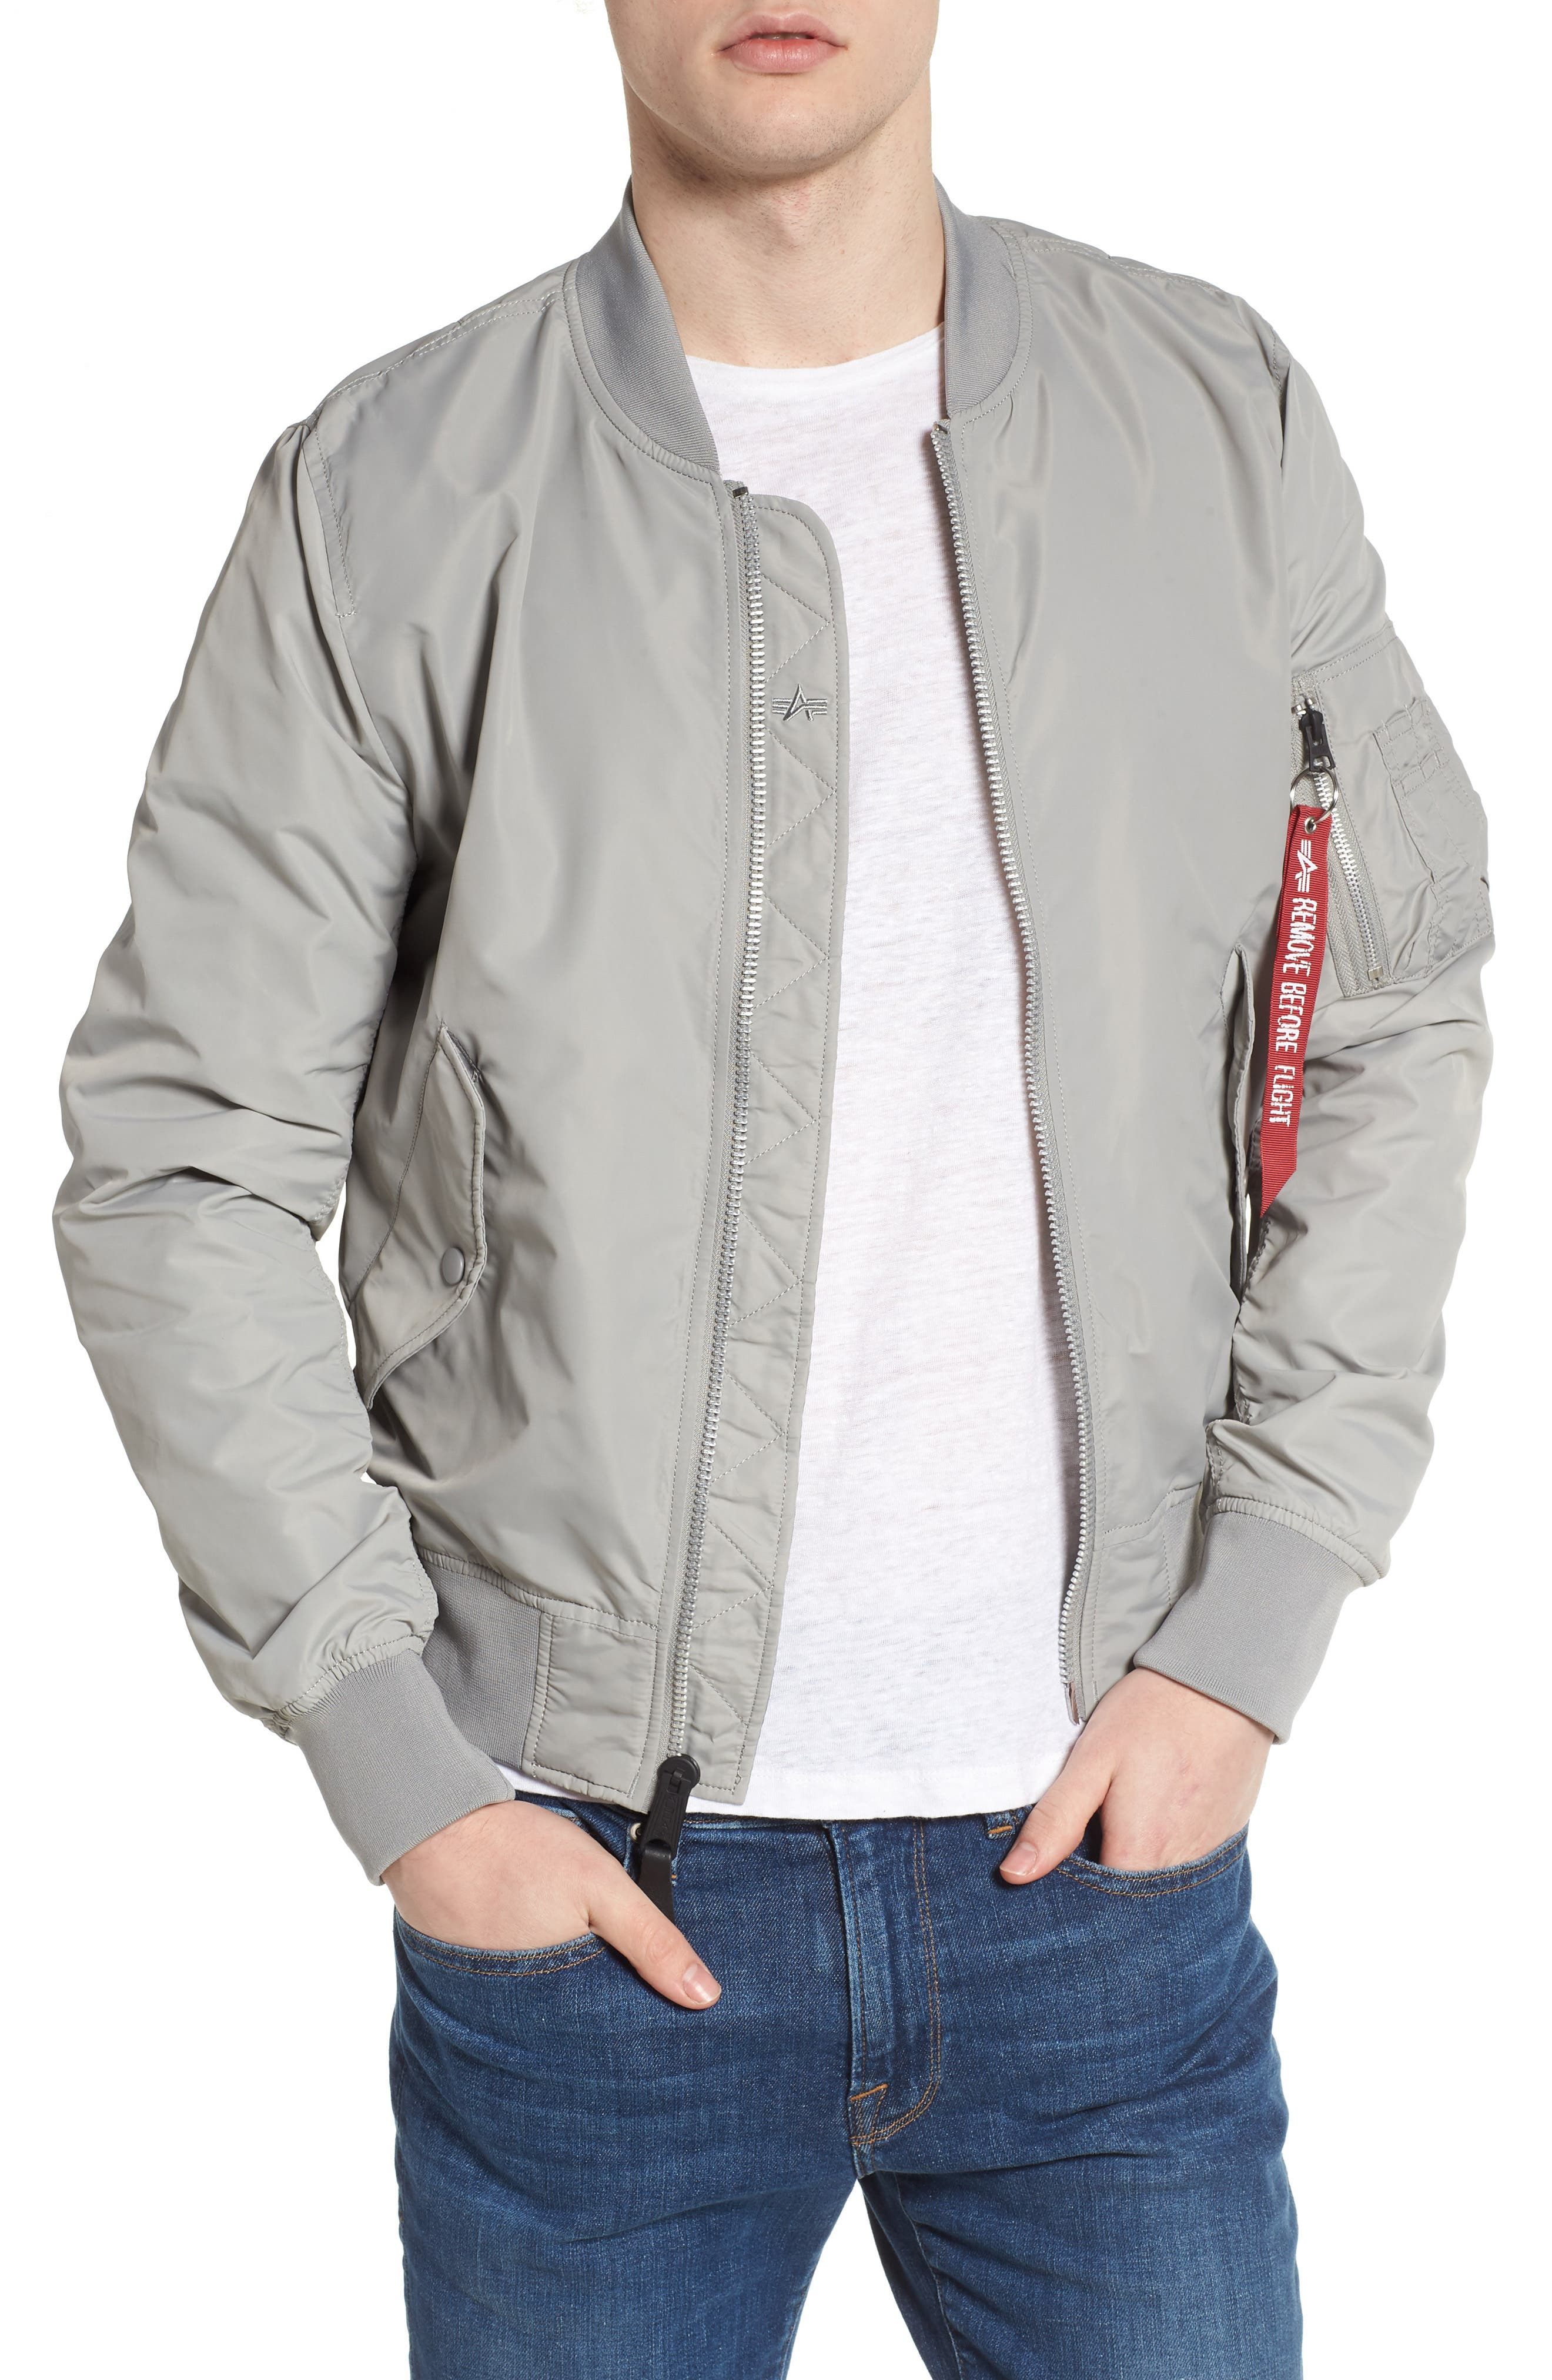 LB-2 Scout Reversible Flight Jacket,                         Main,                         color,